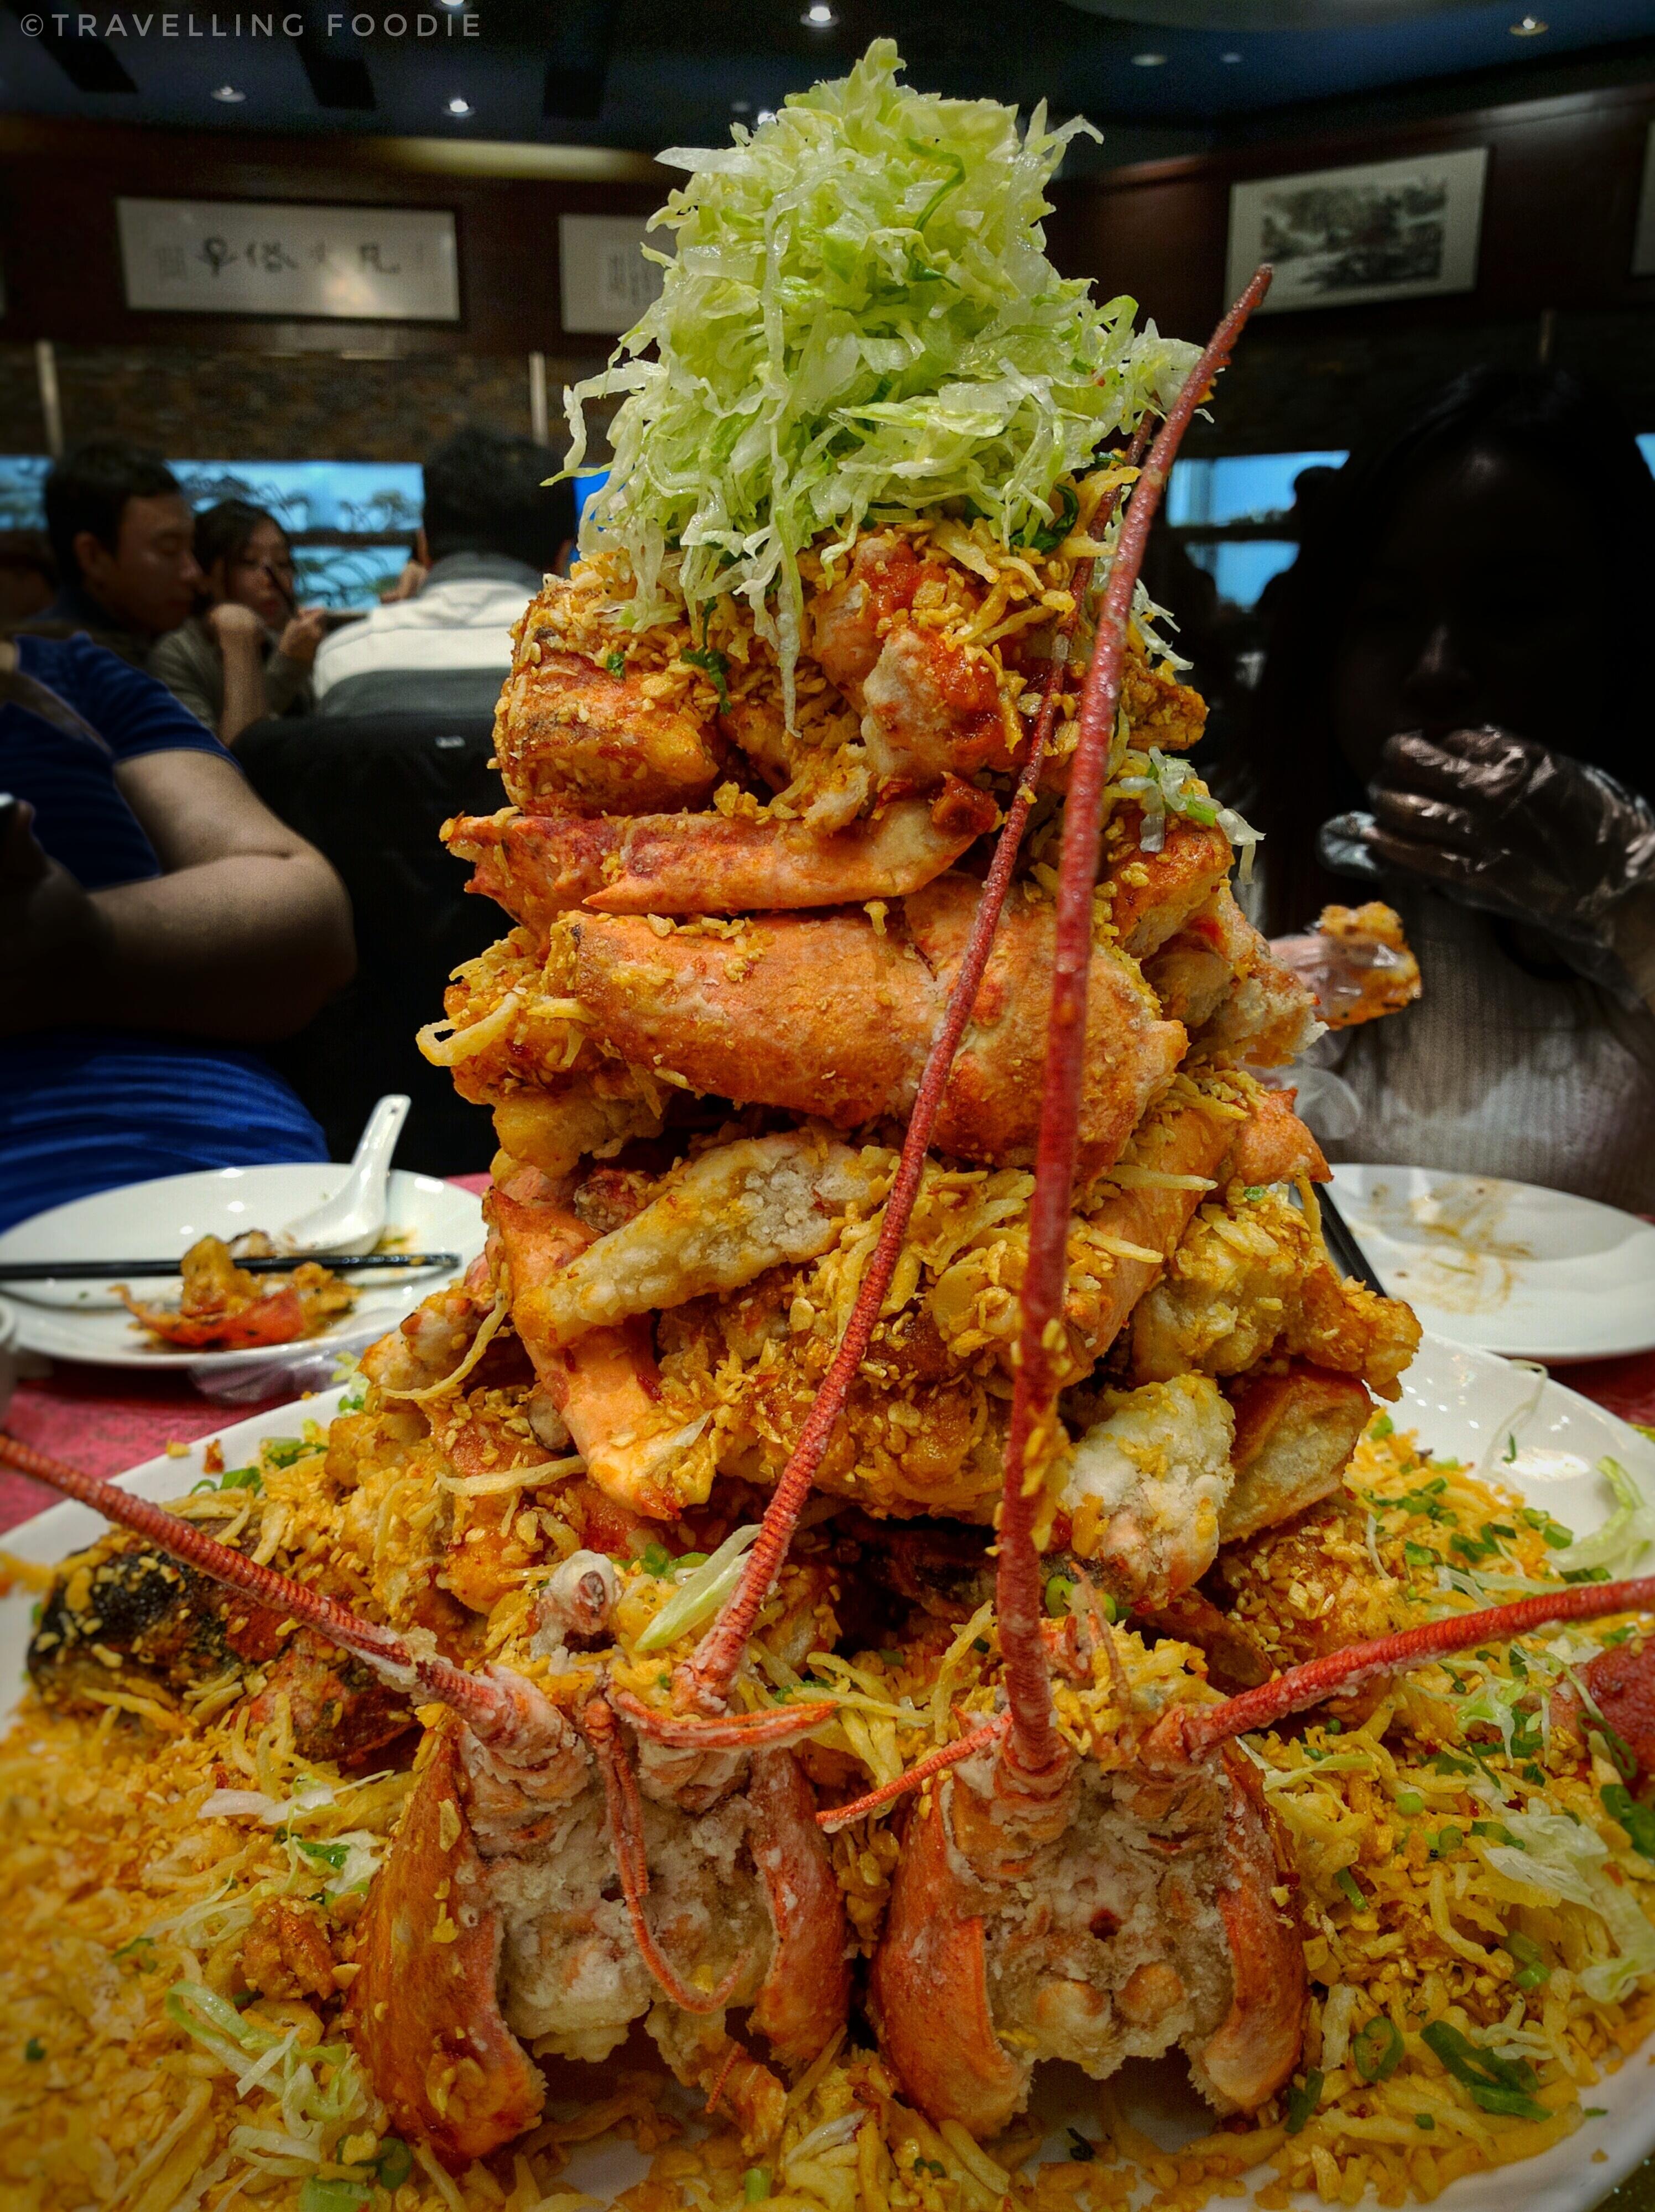 most bizarre foods in the world